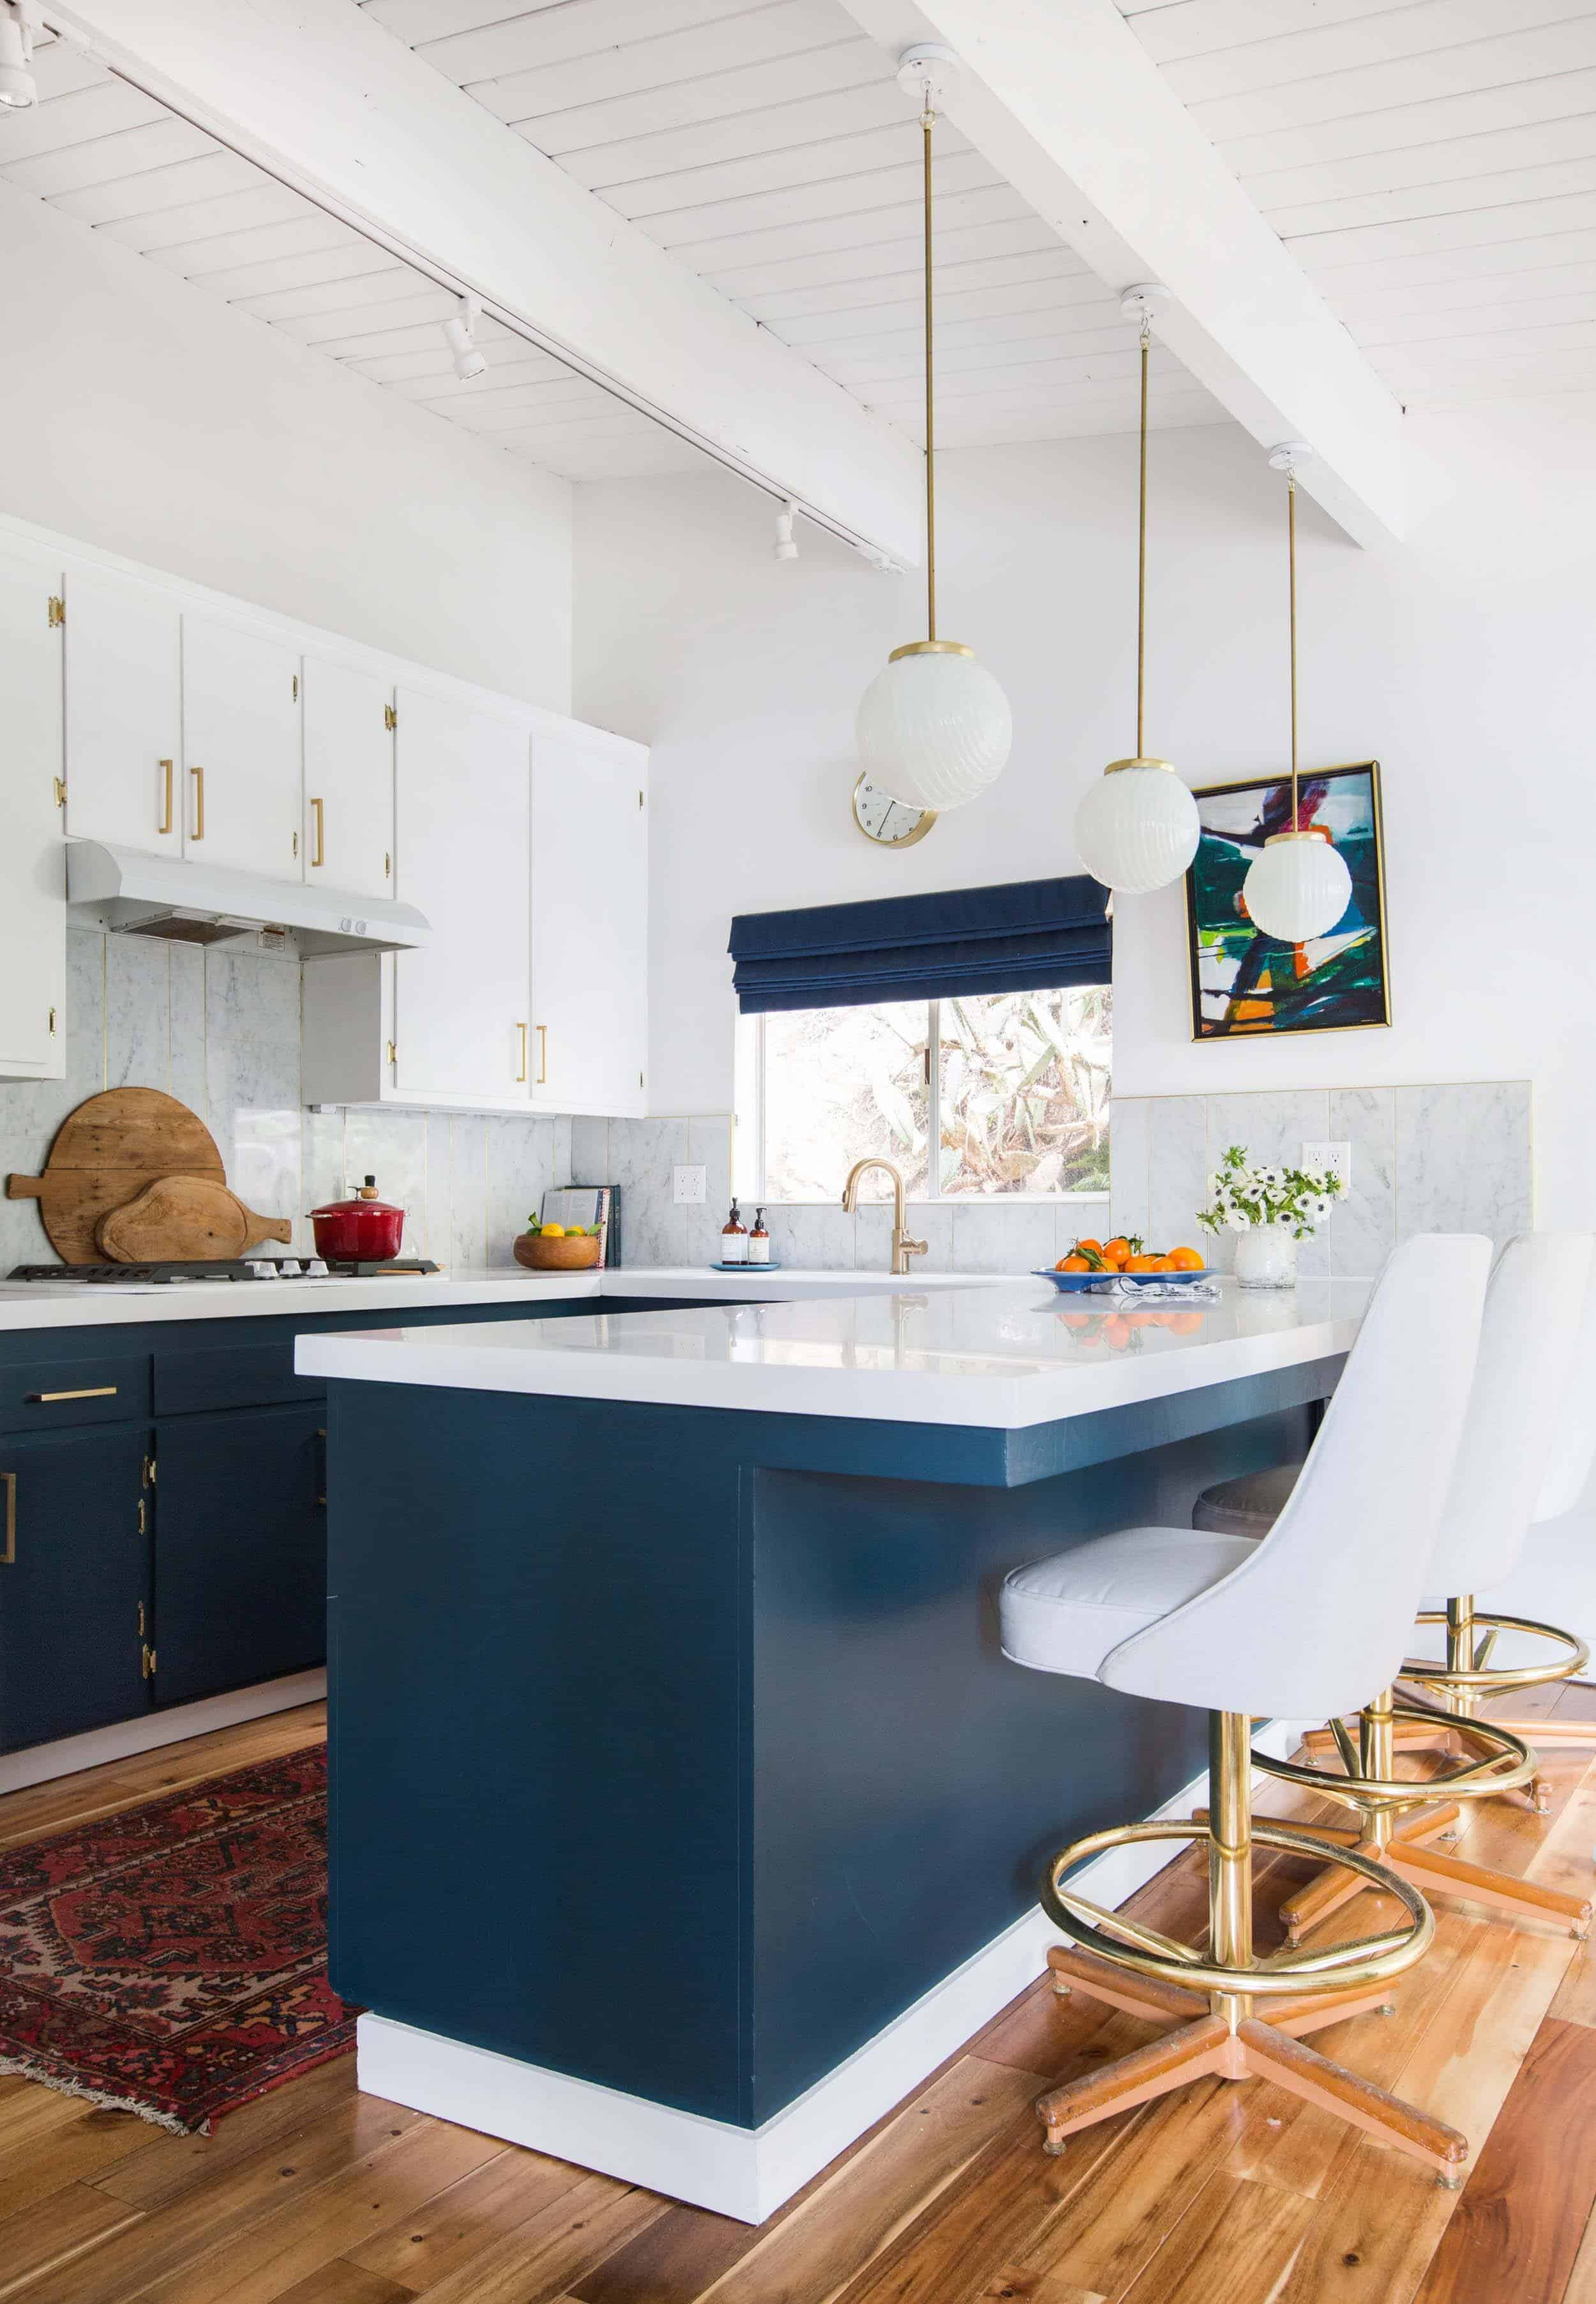 How We Styled Our Family Room and Kitchen to Sell | Emily Henderson ...